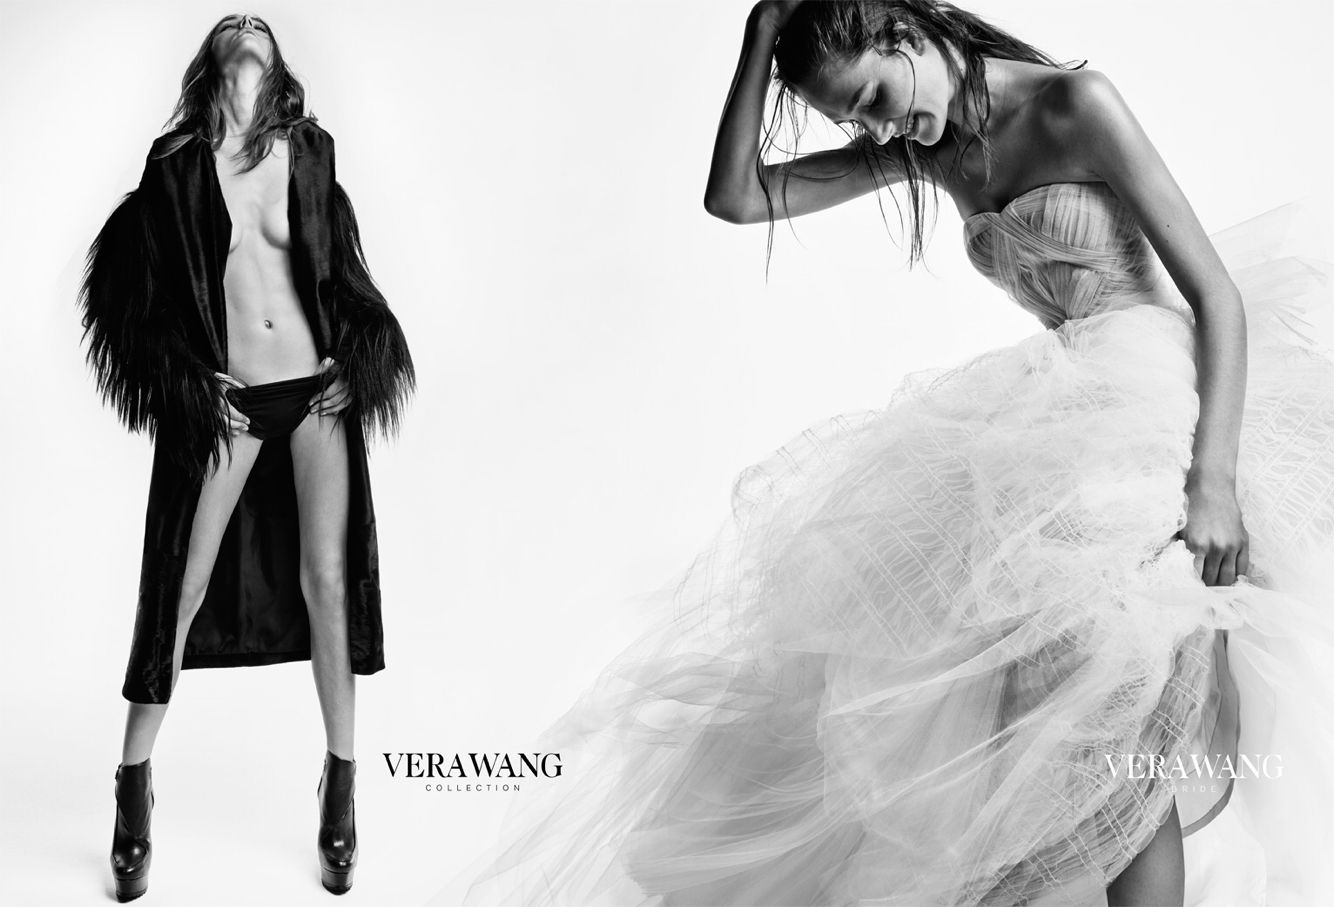 Vera Wang 2014 Photo by Patrick Demarchelier